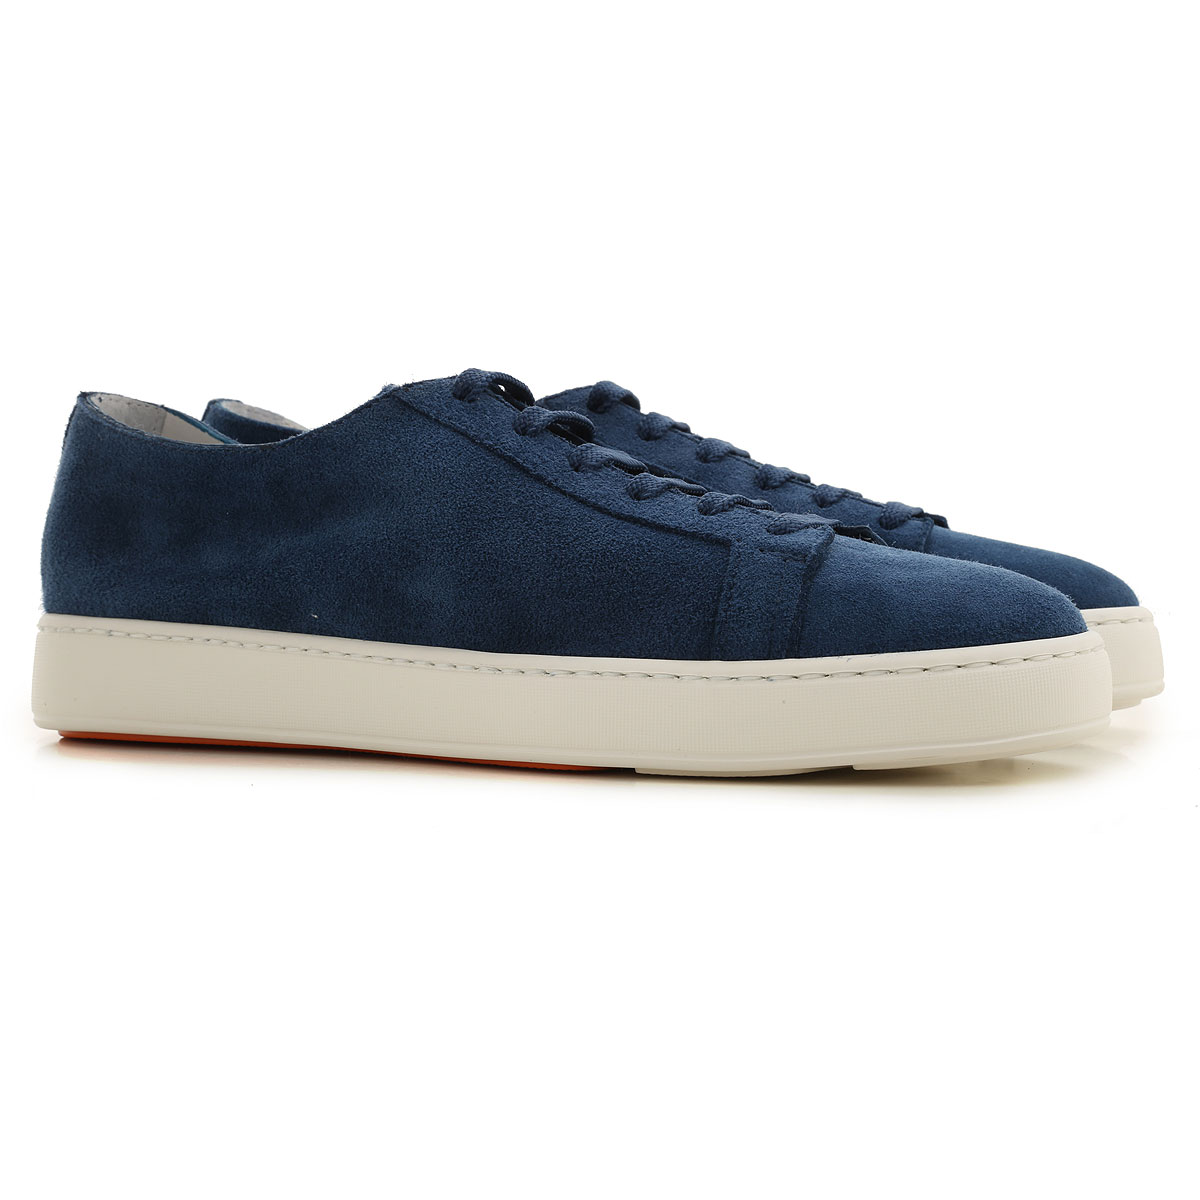 Santoni Sneakers for Men On Sale, Bluette, Suede leather, 2019, 10 10.5 11 7 7.5 8 8.5 9